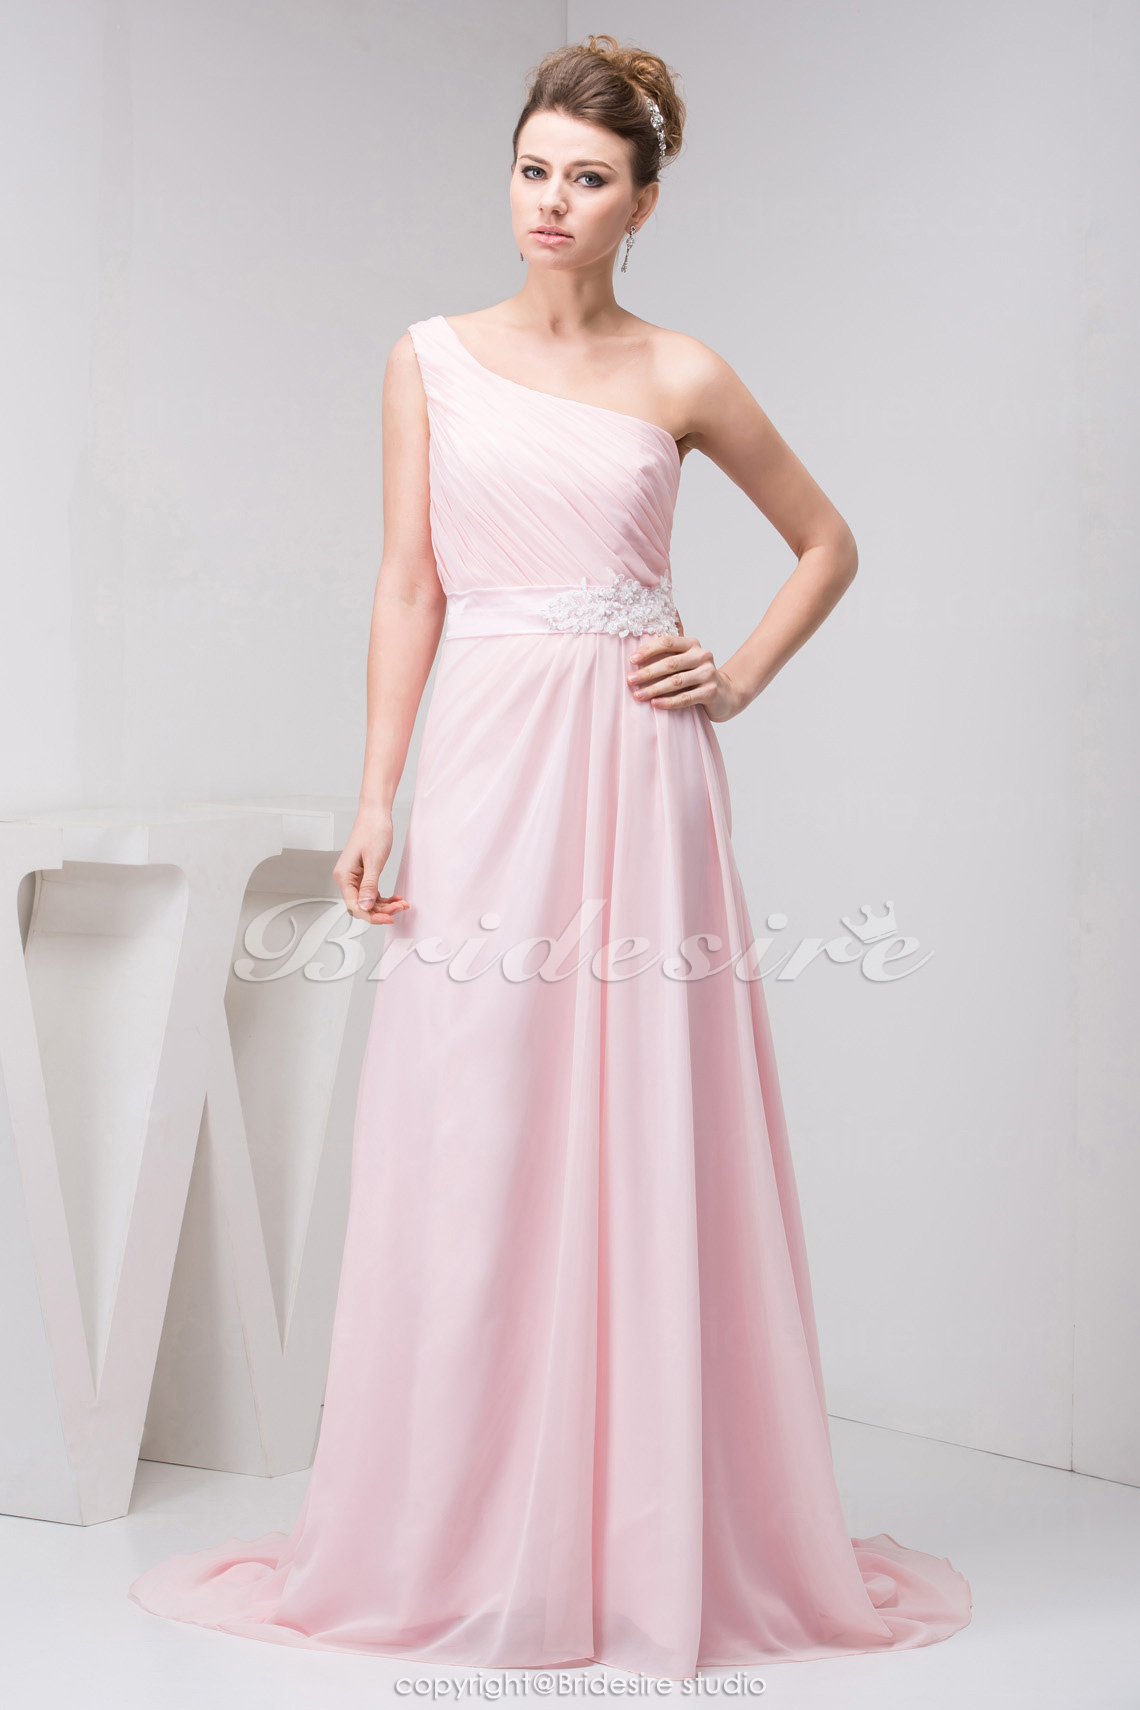 A-line One Shoulder Floor-length Sleeveless Chiffon Bridesmaid Dress